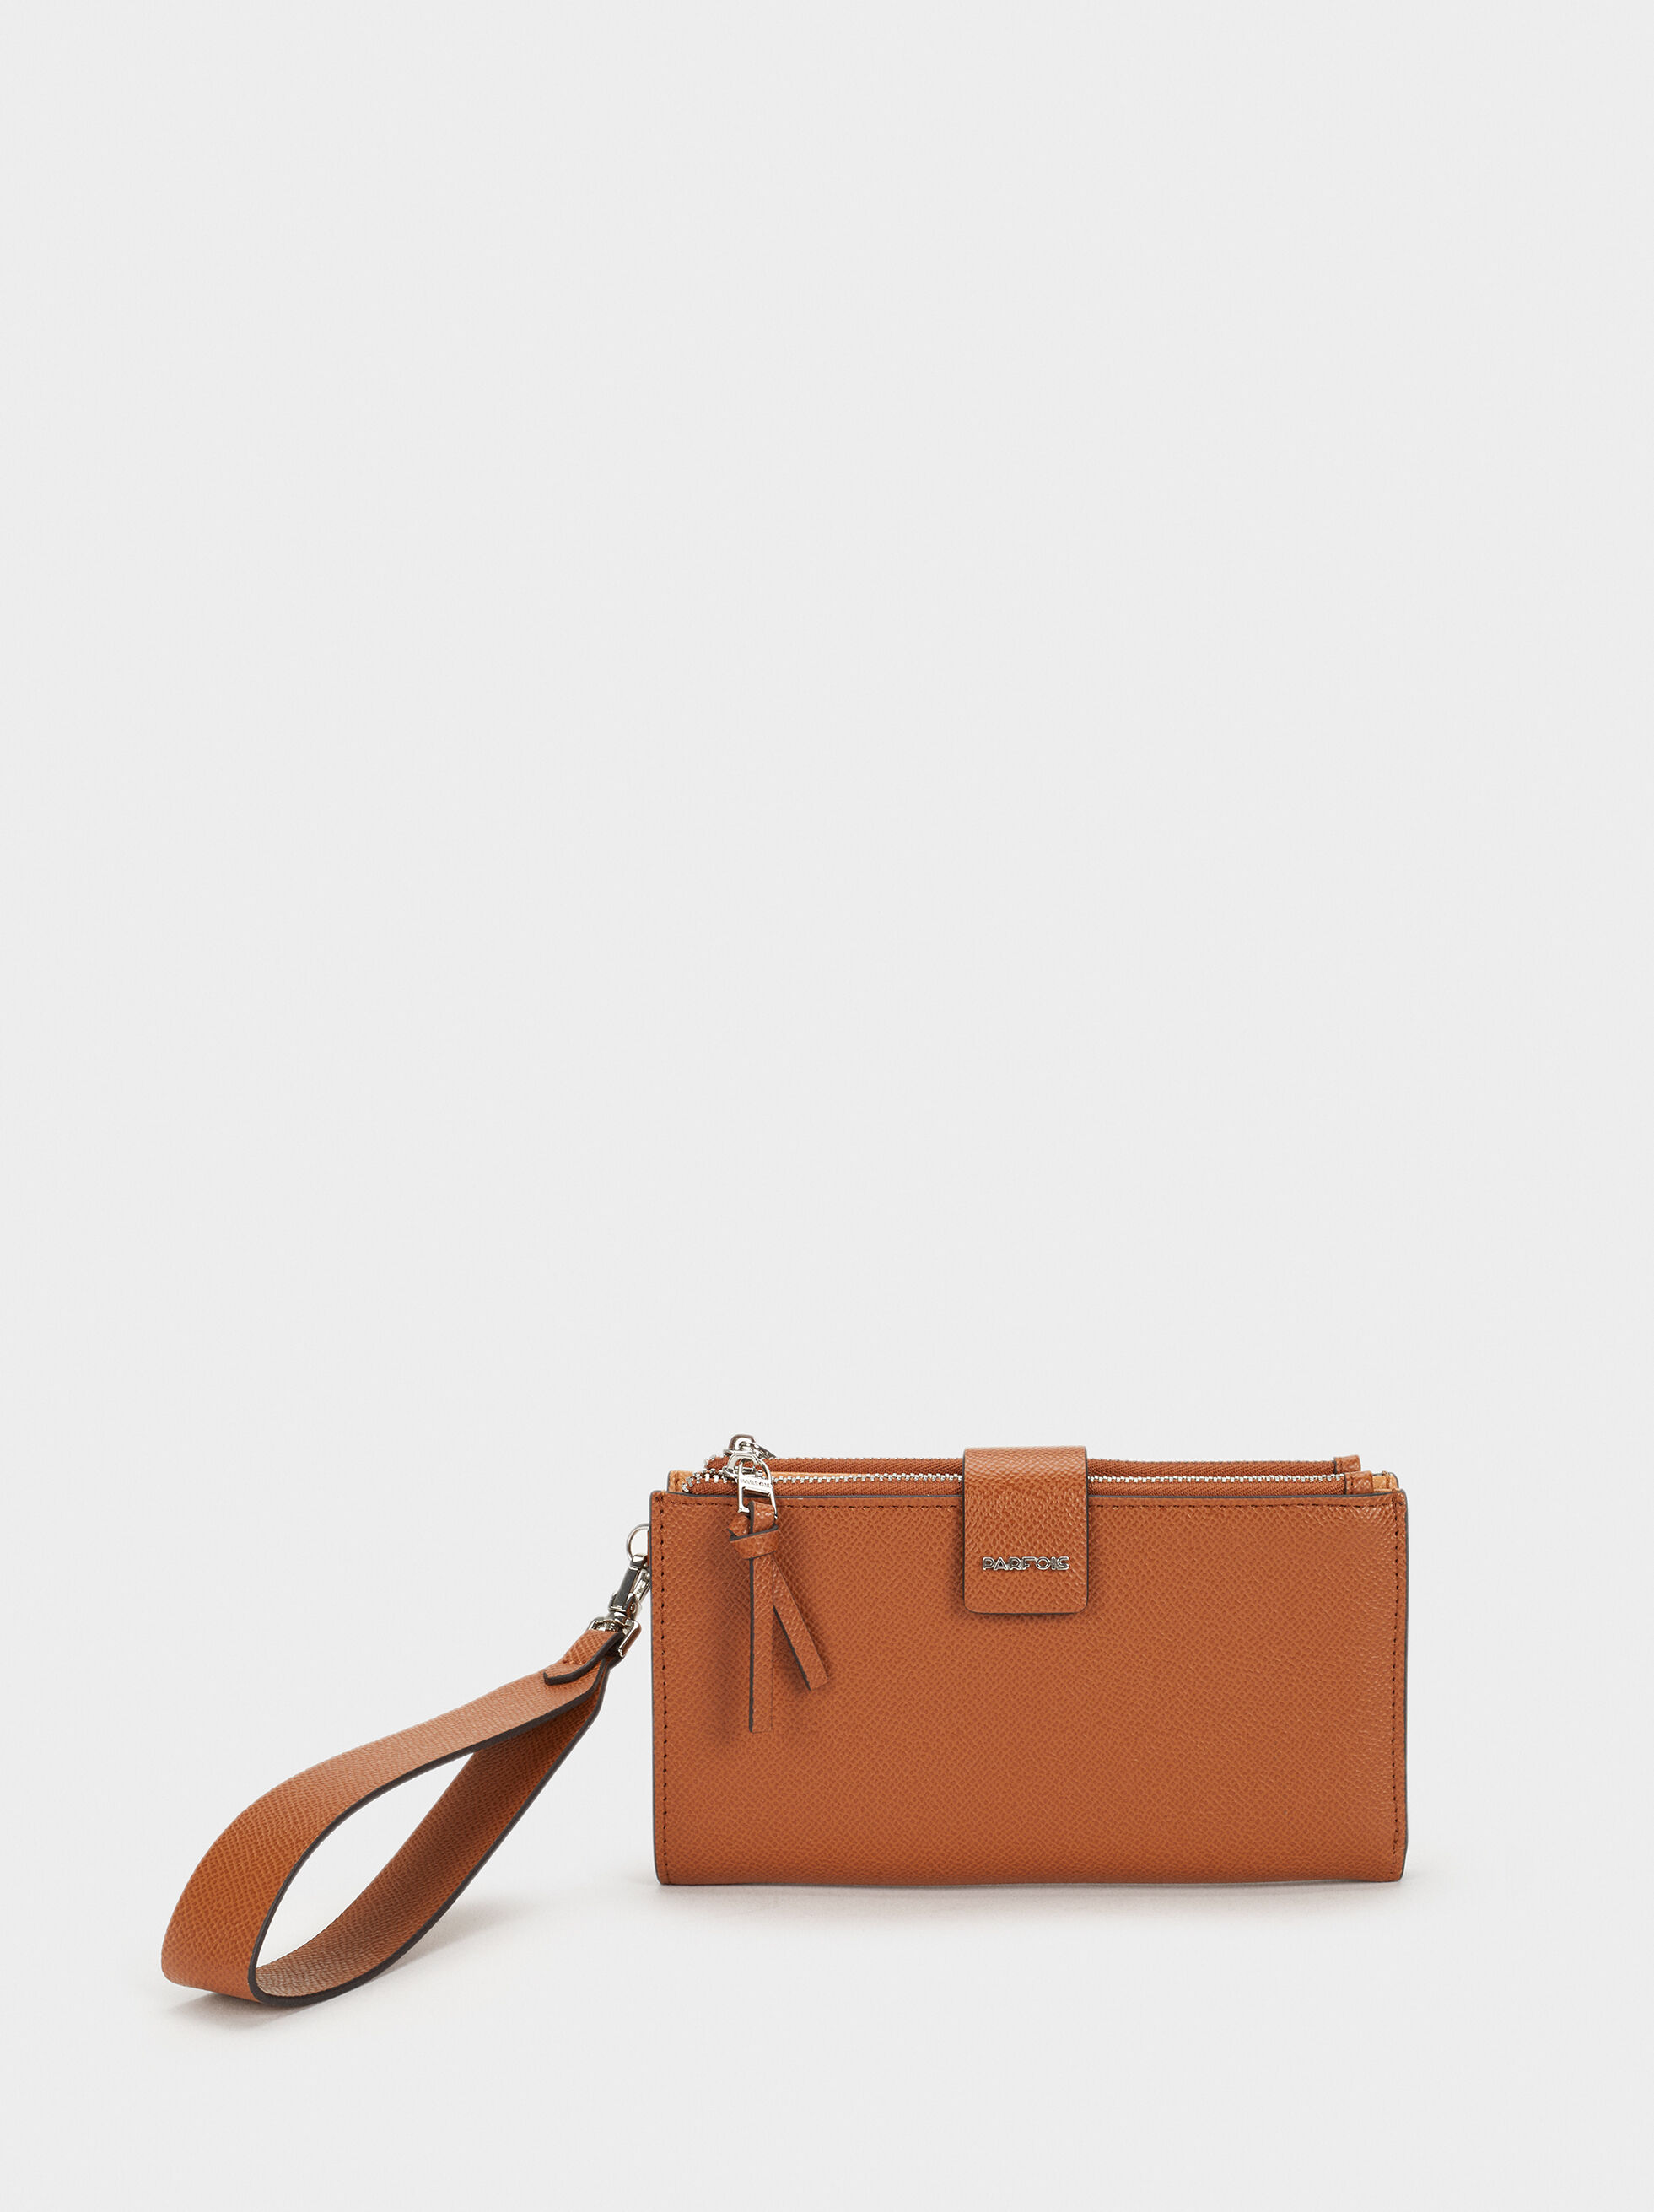 Large Purse With Handle, Camel, hi-res